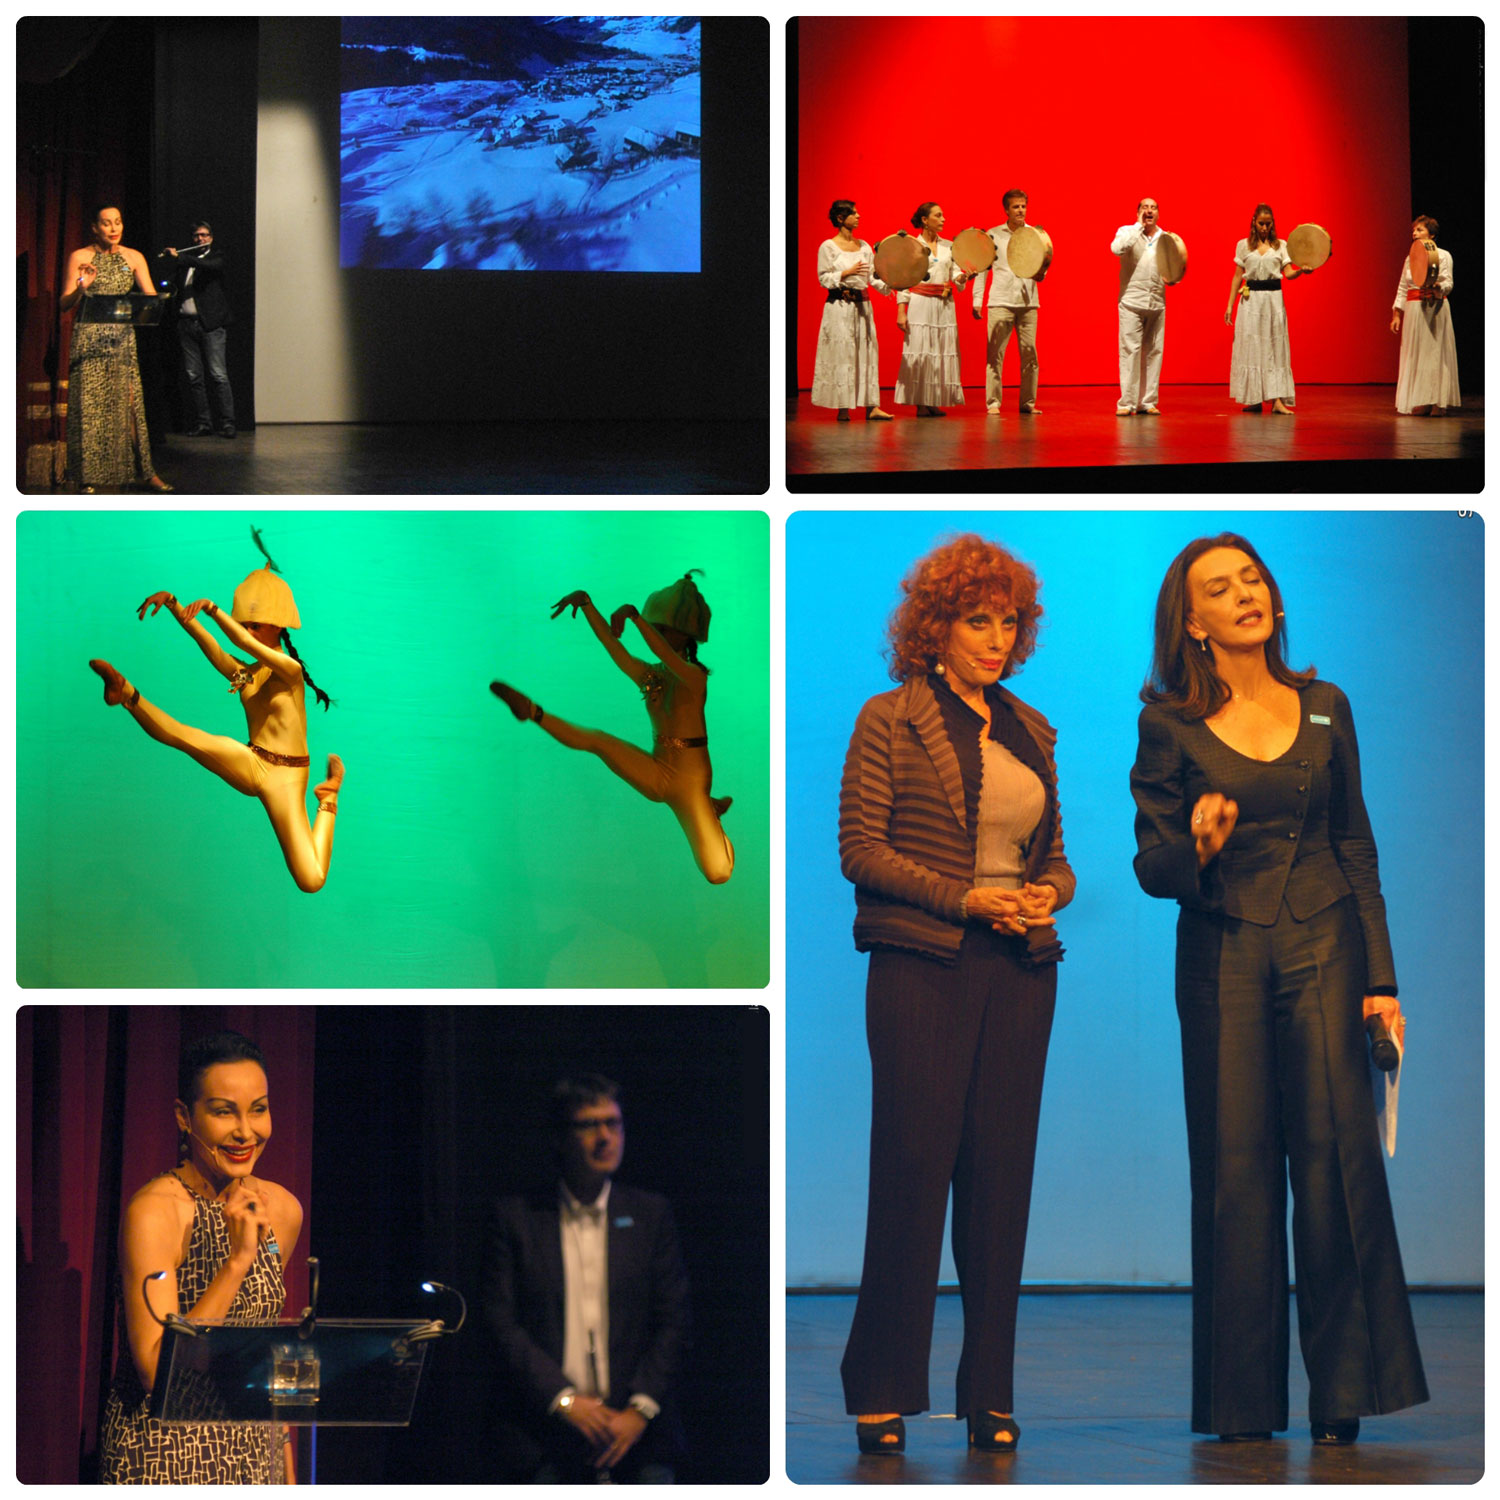 teatro-unicef-Collage-web